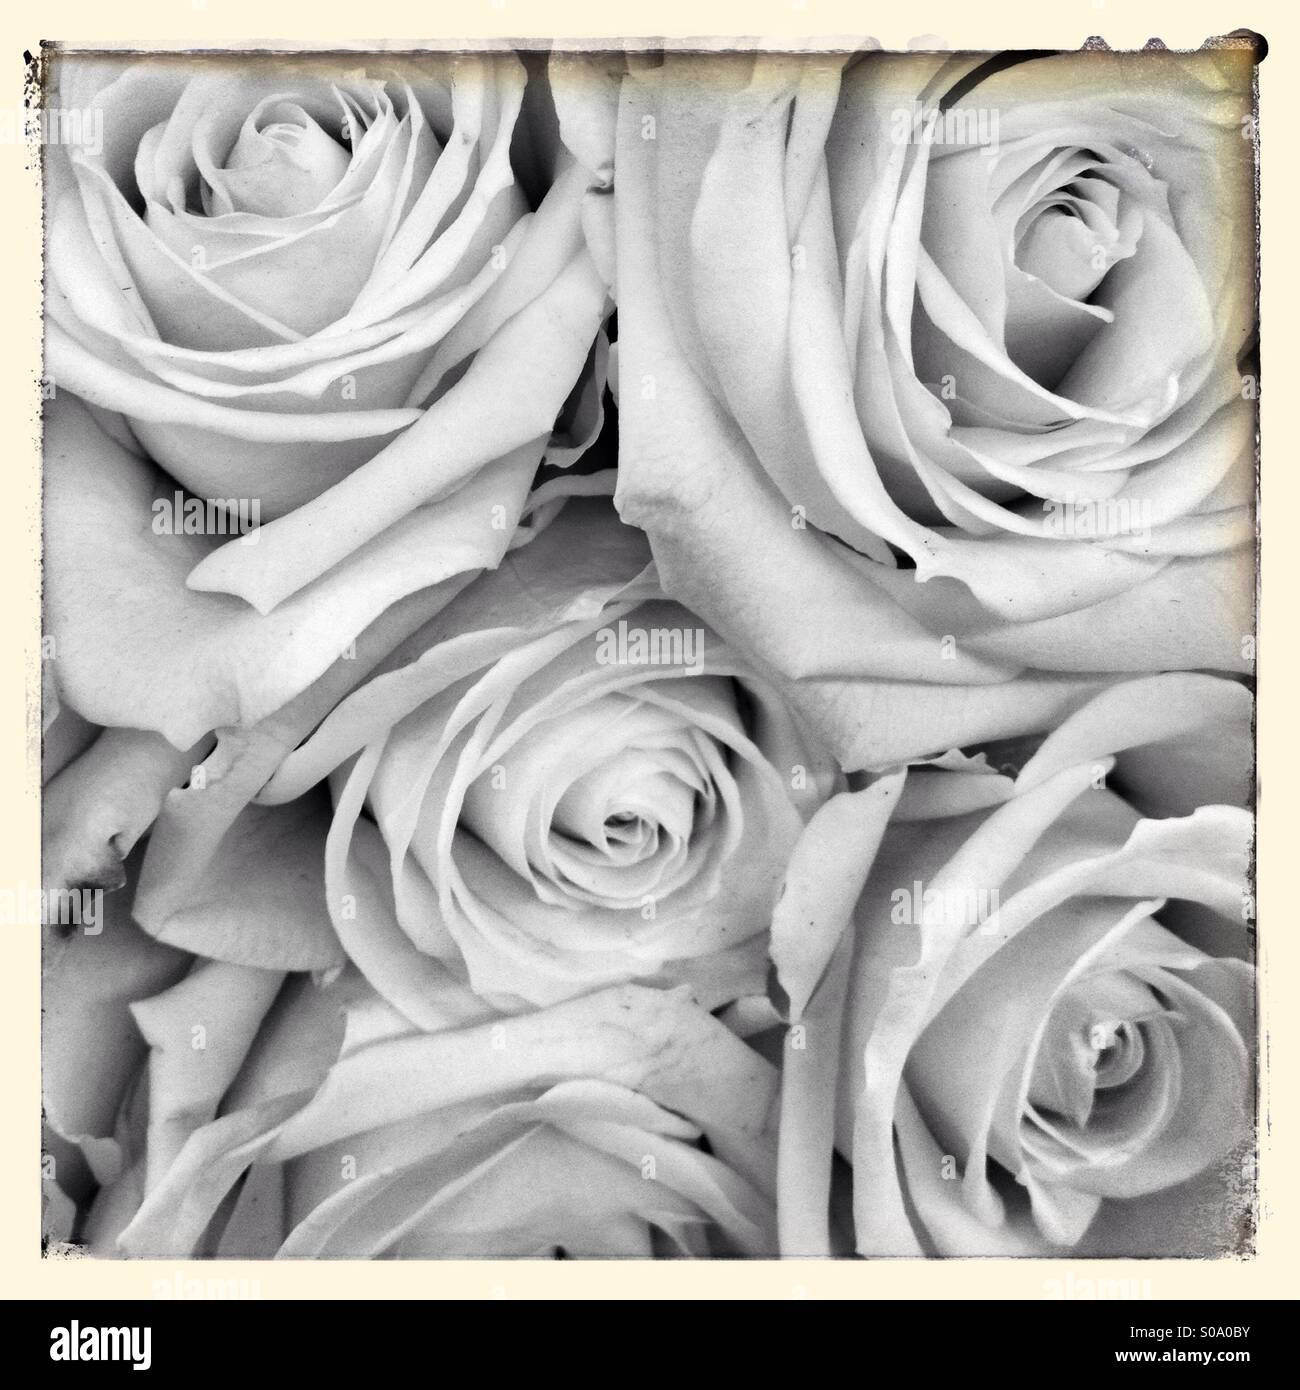 Roses in black and white vintage tones - Stock Image